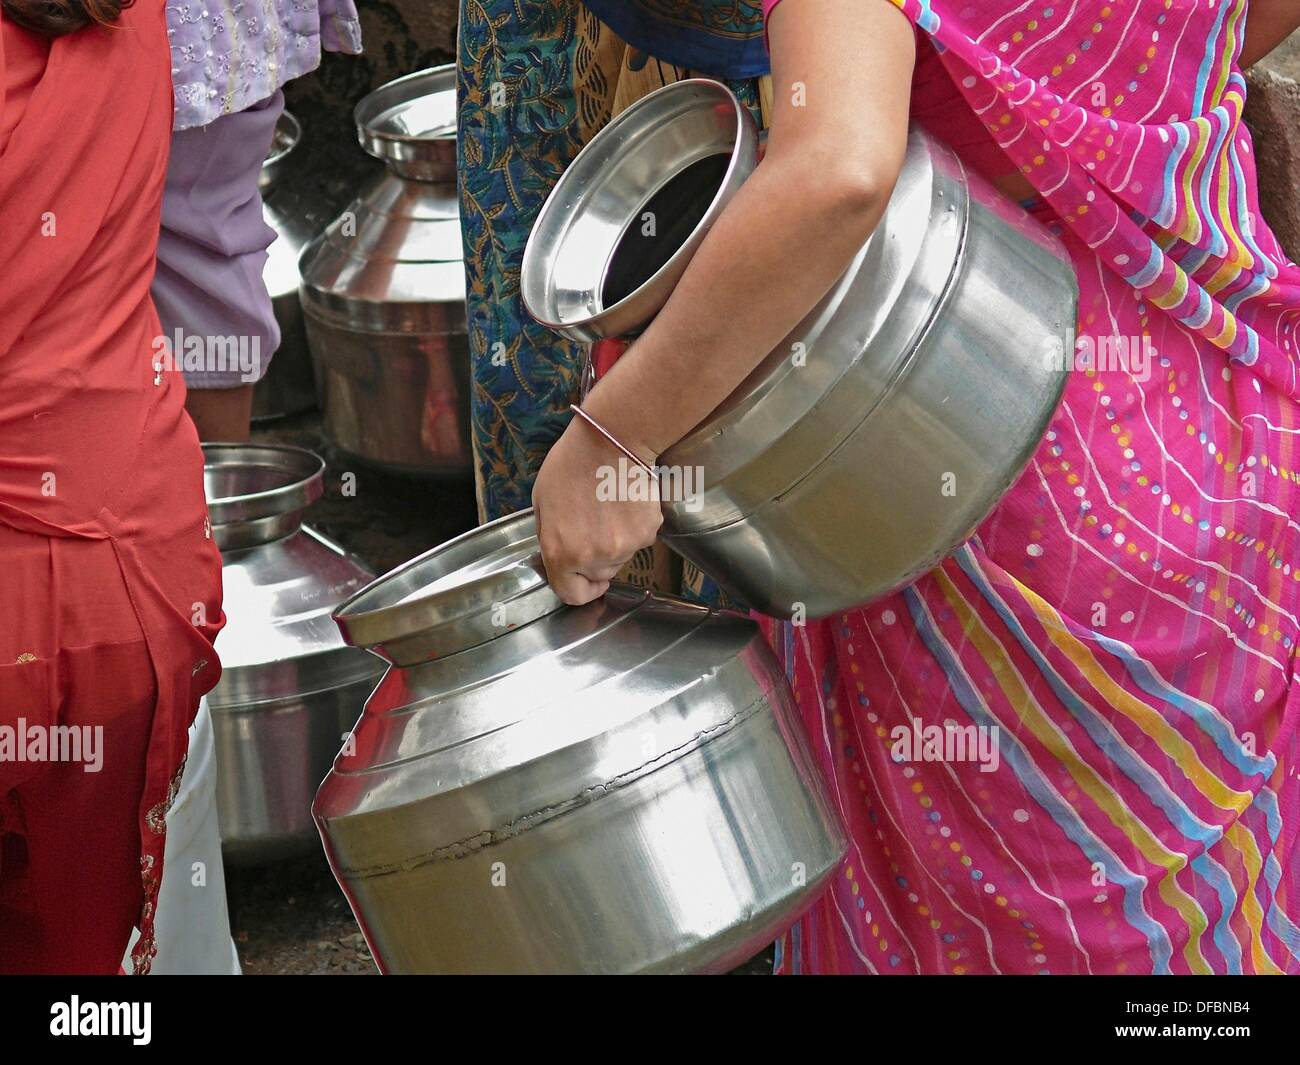 a woman holding vessels in hand is at community water tap pune maharashtra